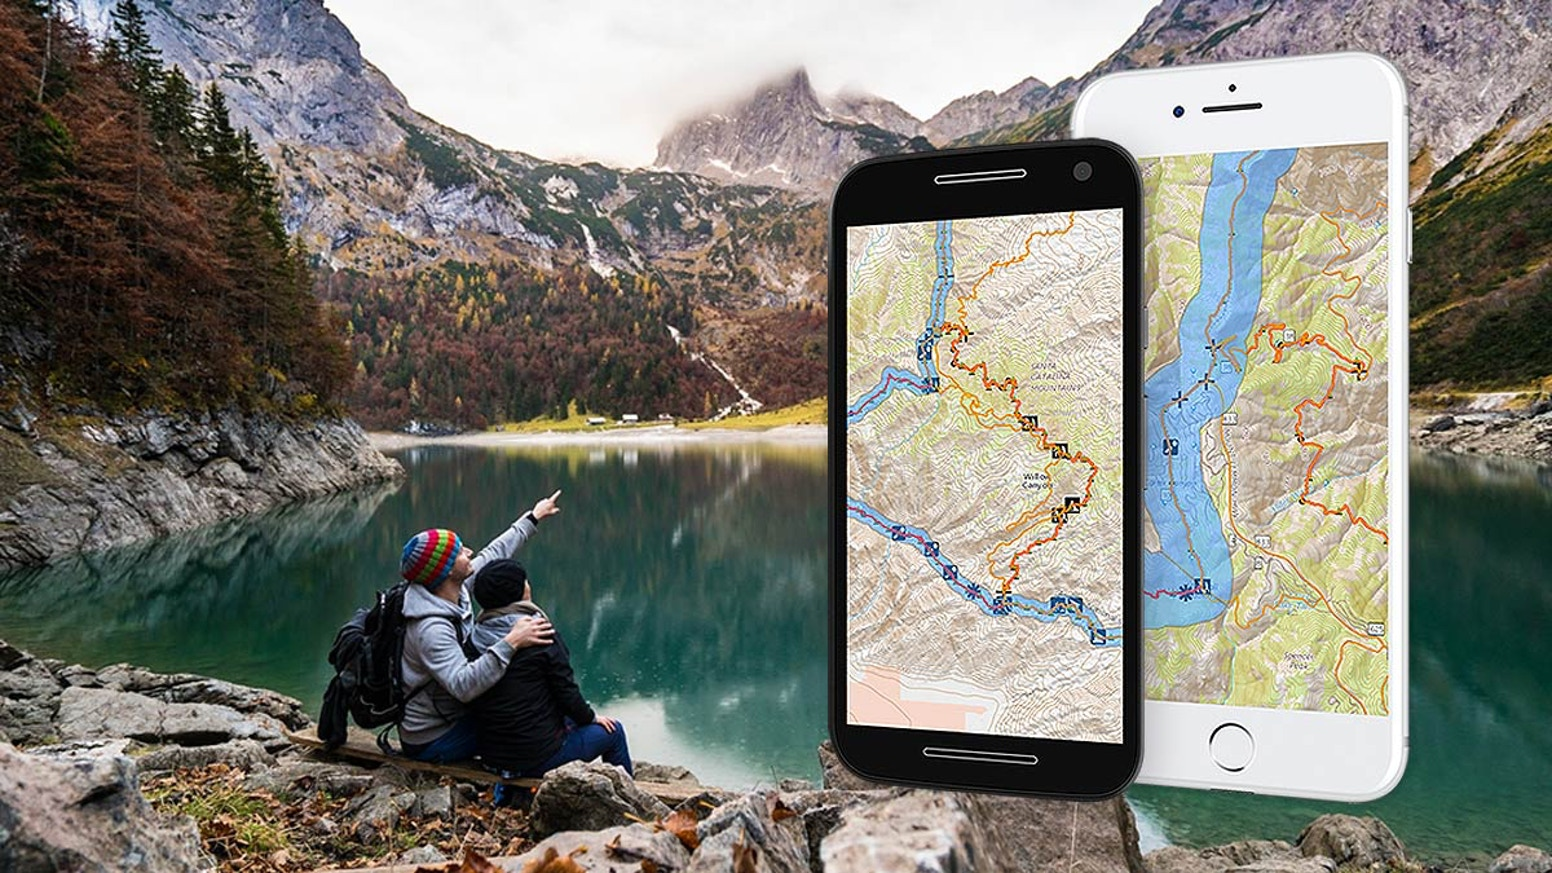 No cell coverage? No worries… The easy way to navigate your outdoor adventures using your smartphone. Hiking, backpacking, and more.